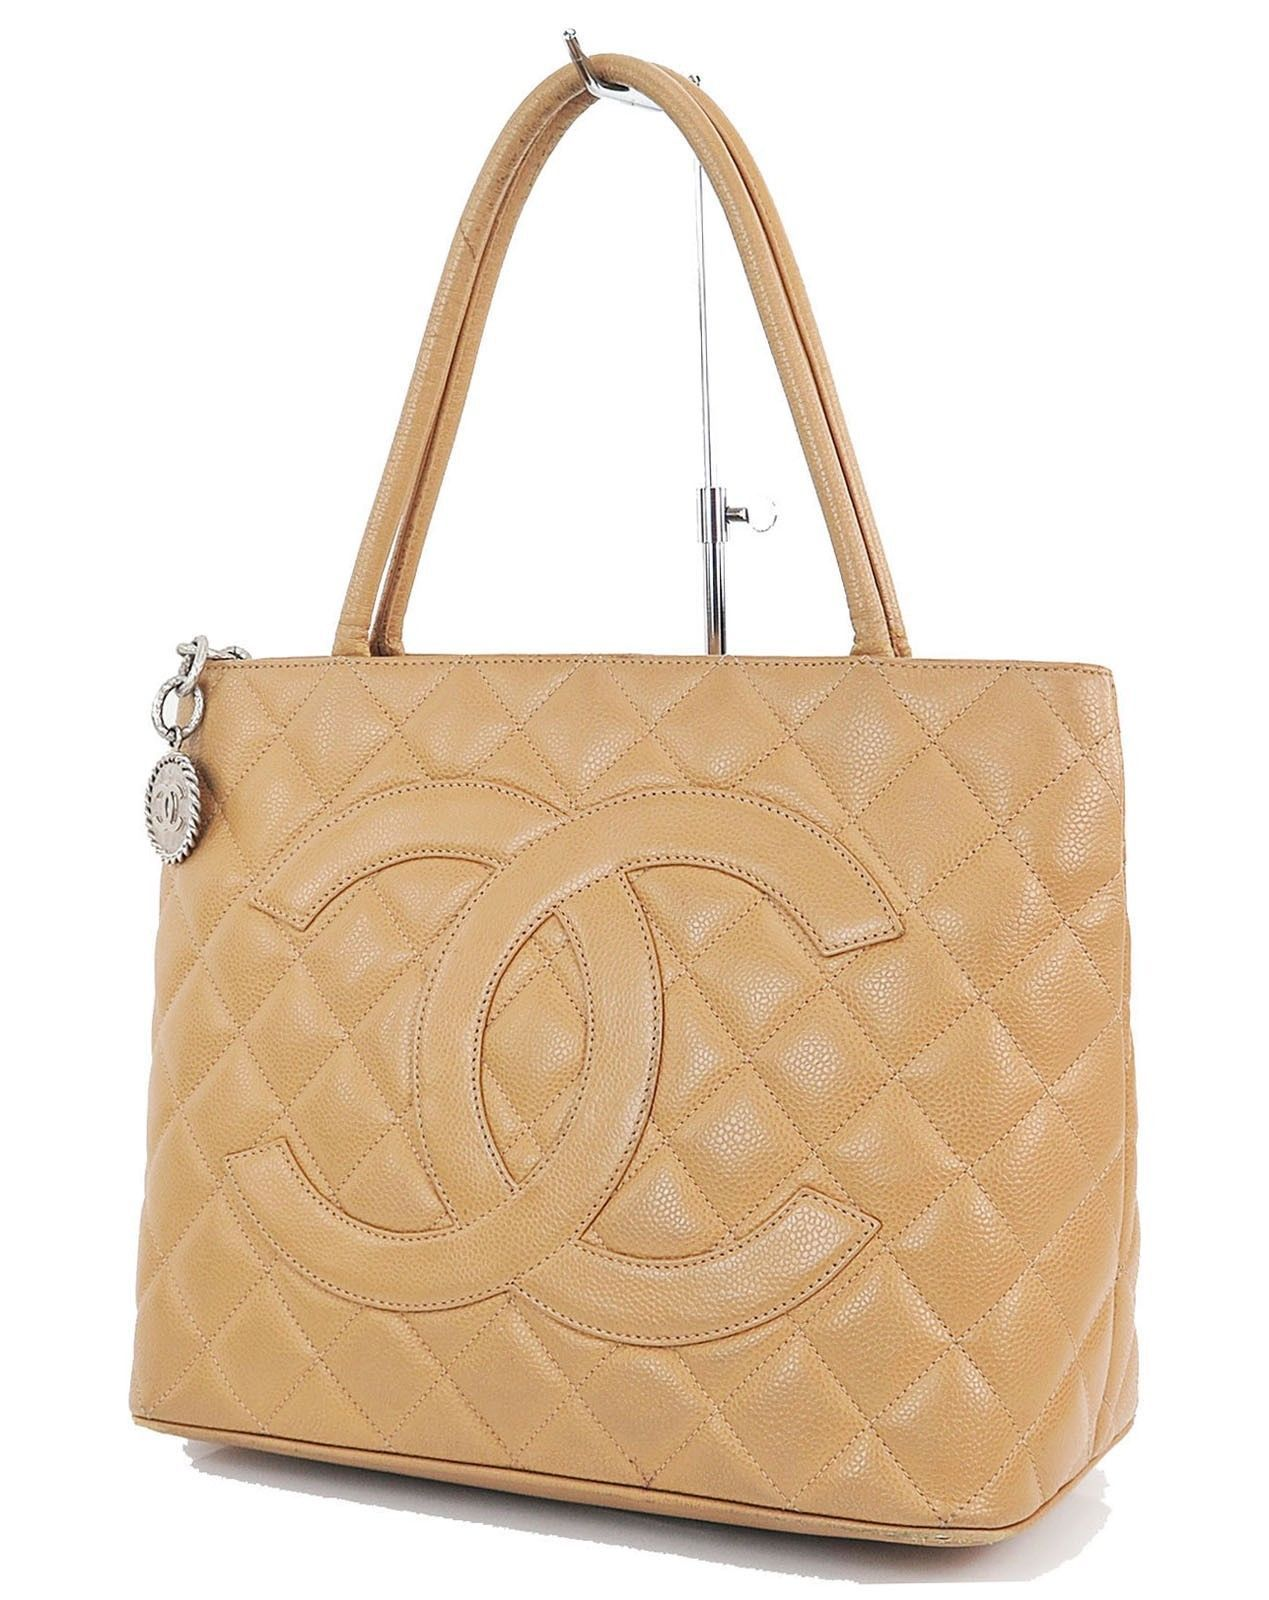 1c02f78c971ce1 Auth CHANEL Beige Quilted Caviar Leather CC Medallion Tote Bag Purse #28600